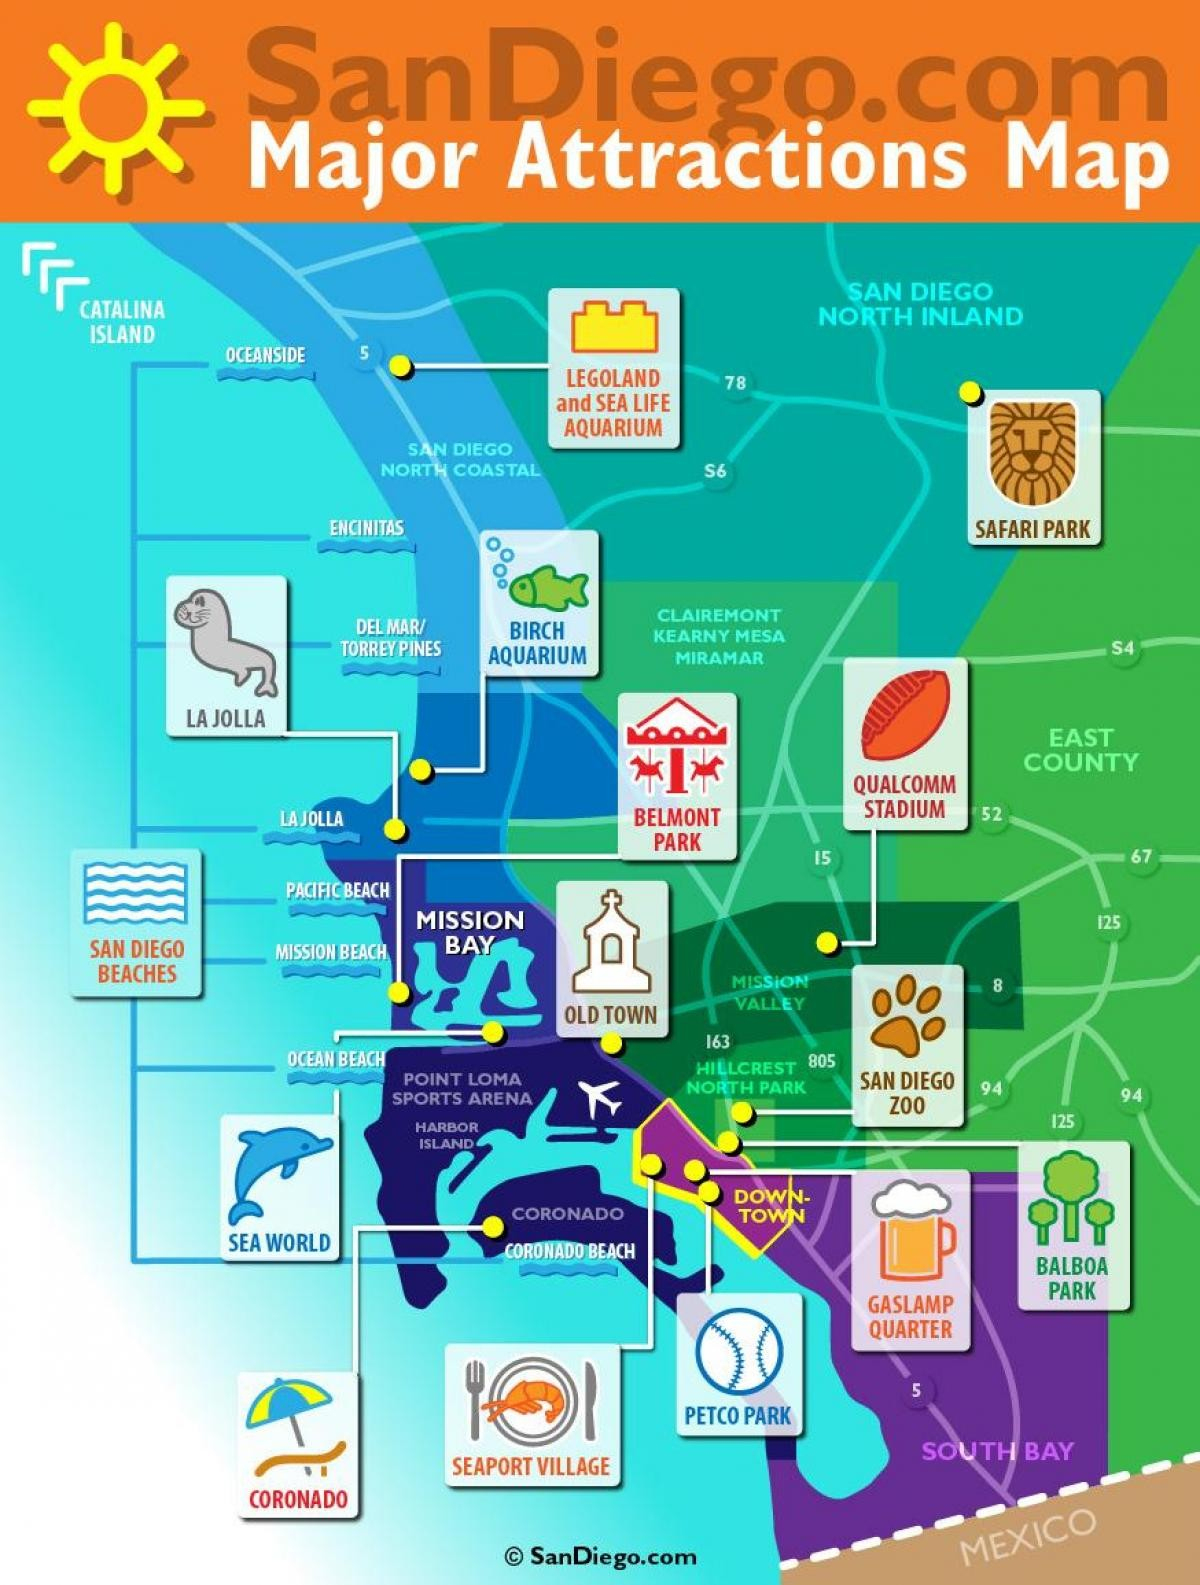 Category: Maps 104 | Zhangyedahuang - San Diego Attractions Map Printable